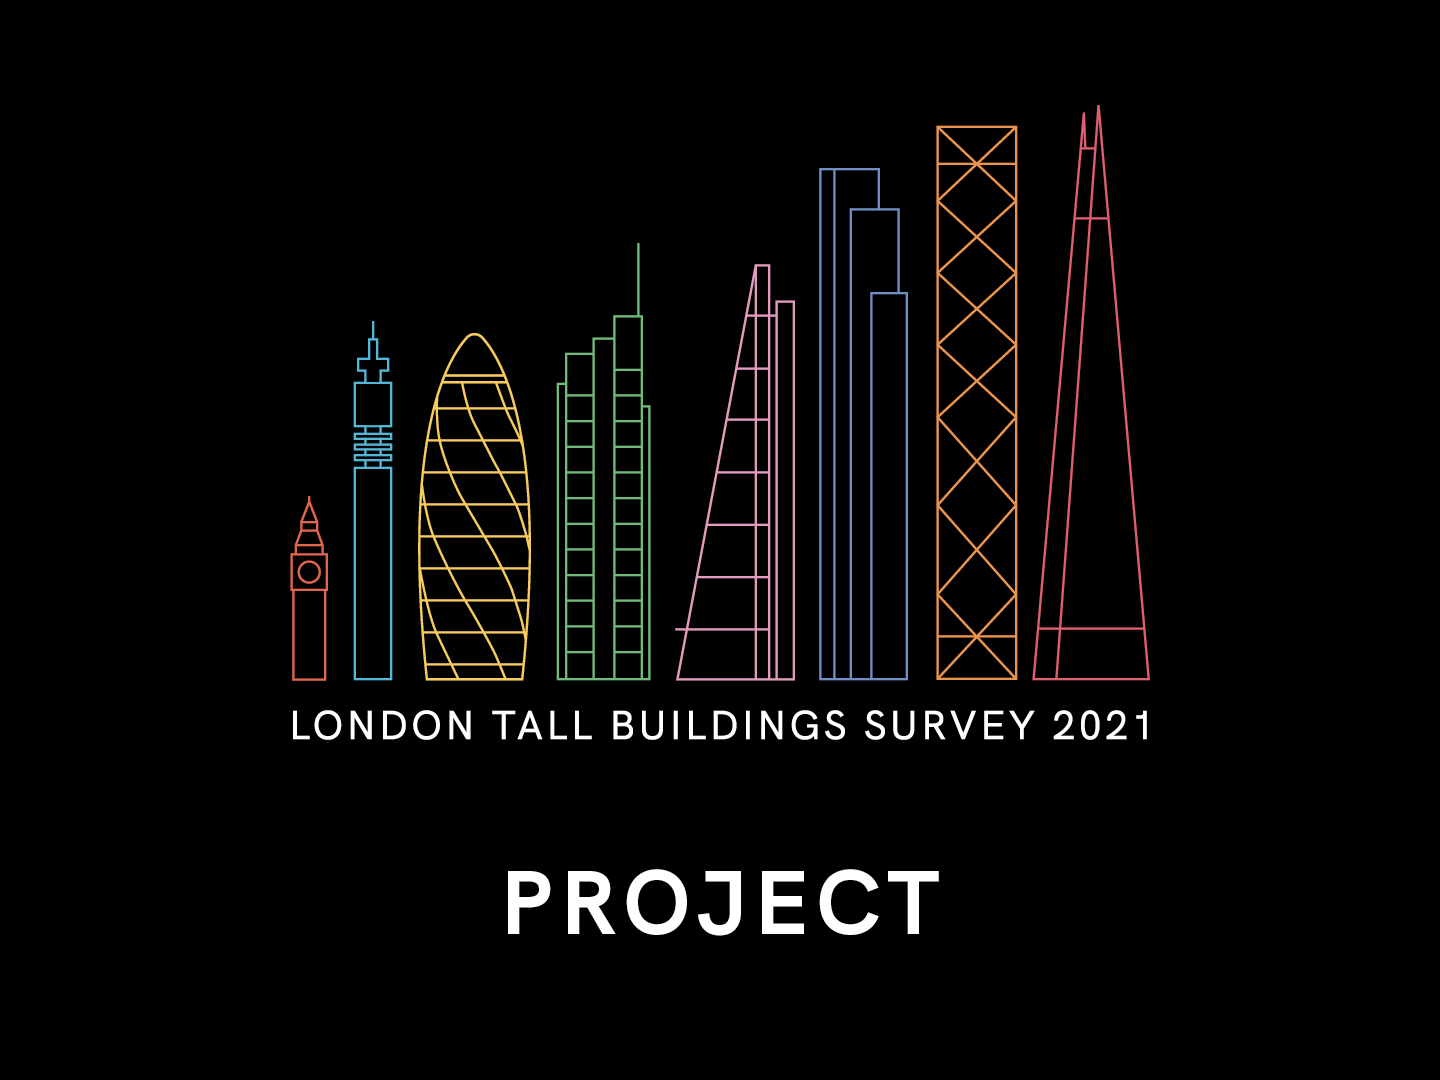 London Tall Buildings 2021